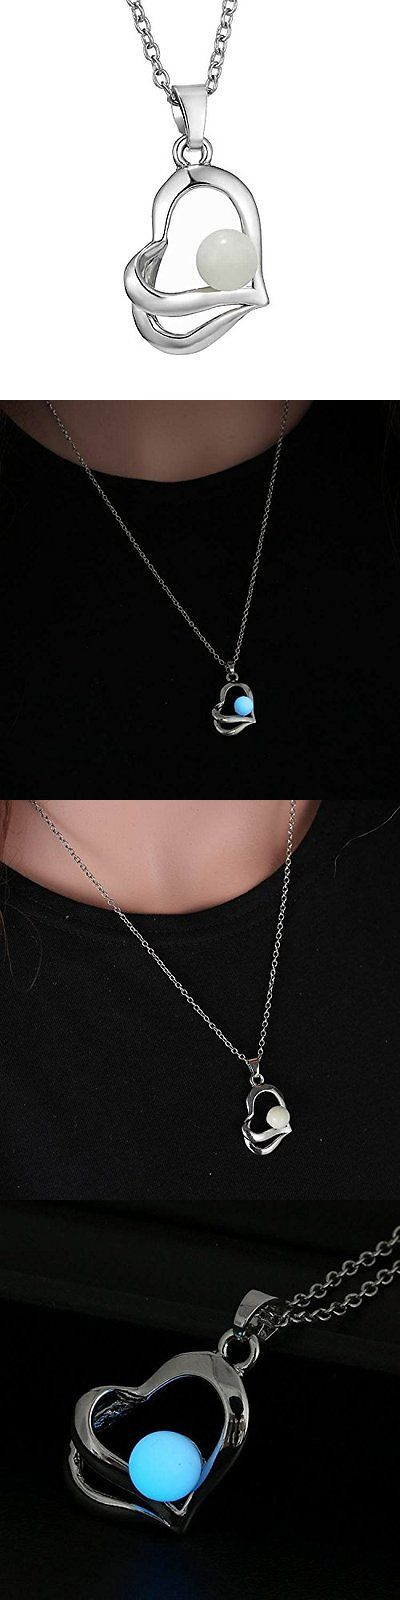 Jewelry 175526: Fm42 Glow In The Dark Ball And Open Heart Pendant Necklace, New -> BUY IT NOW ONLY: $108 on eBay!